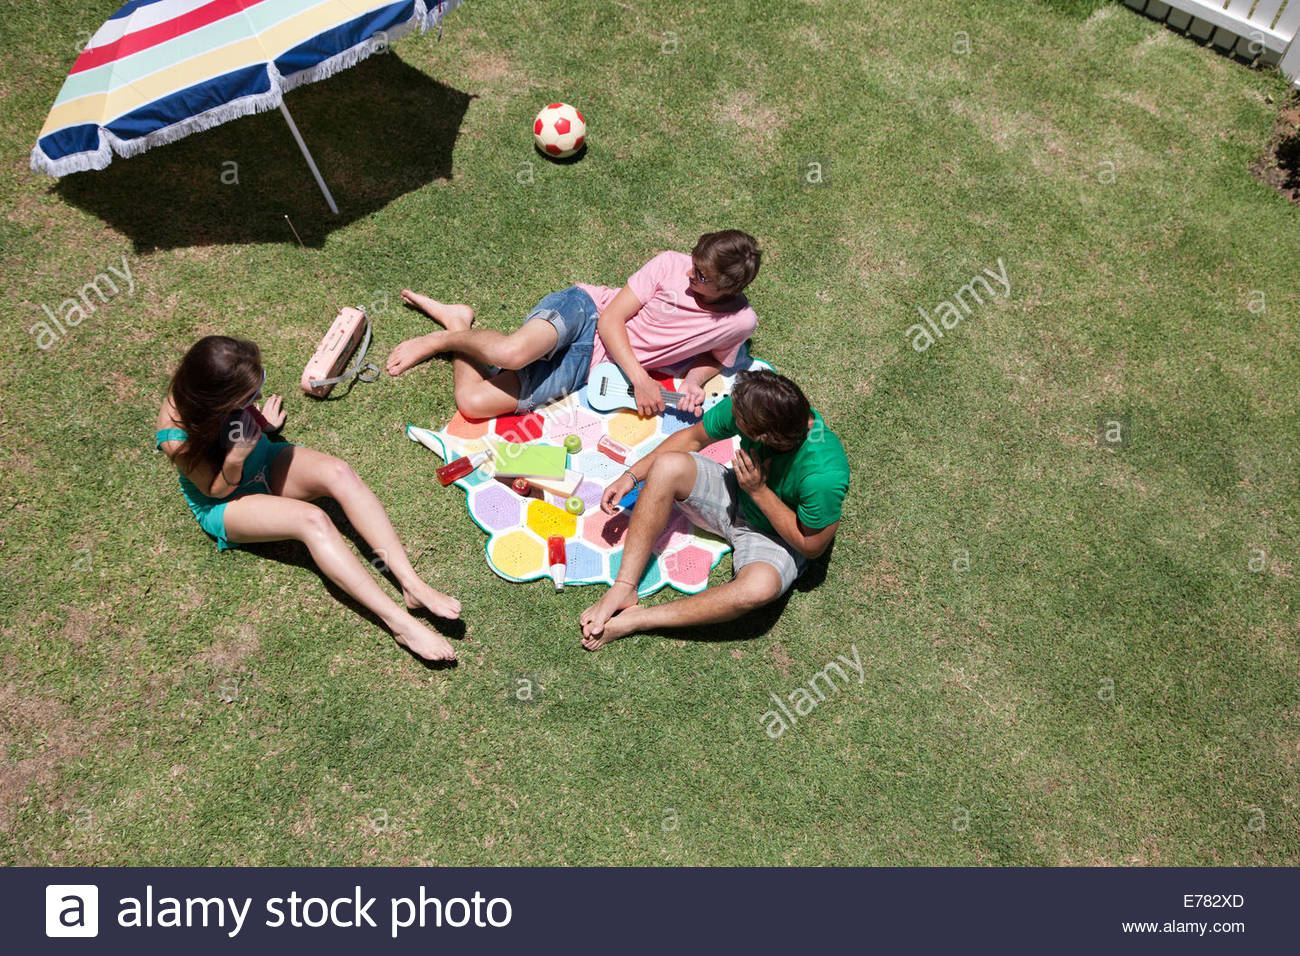 Friends sunbathing and relaxing on sunny grass - Stock Image